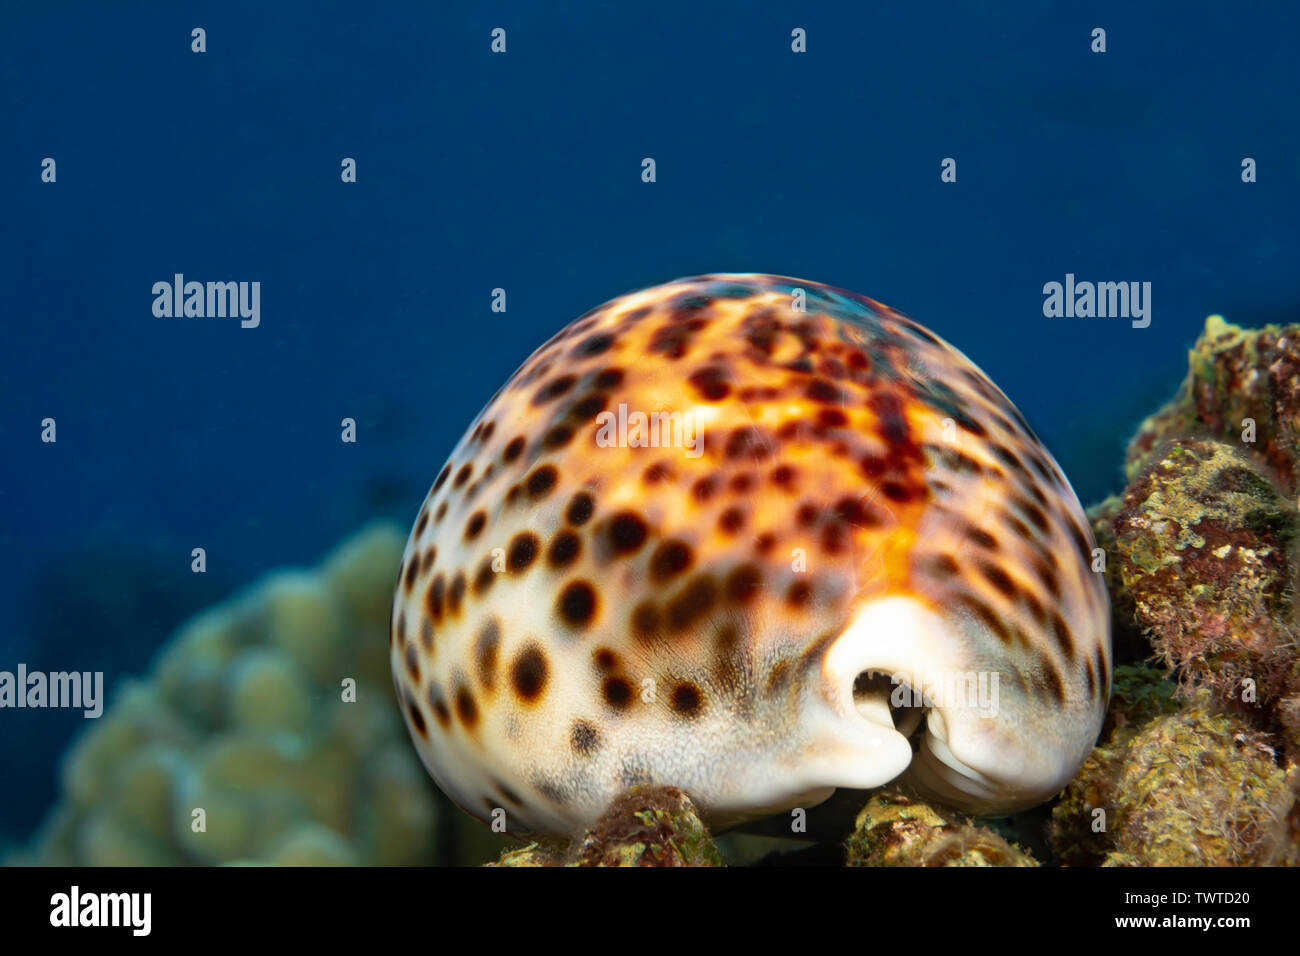 The tiger cowry, Cypraea tigris, is one of the larger and more common cowries in Hawaii. - Stock Image